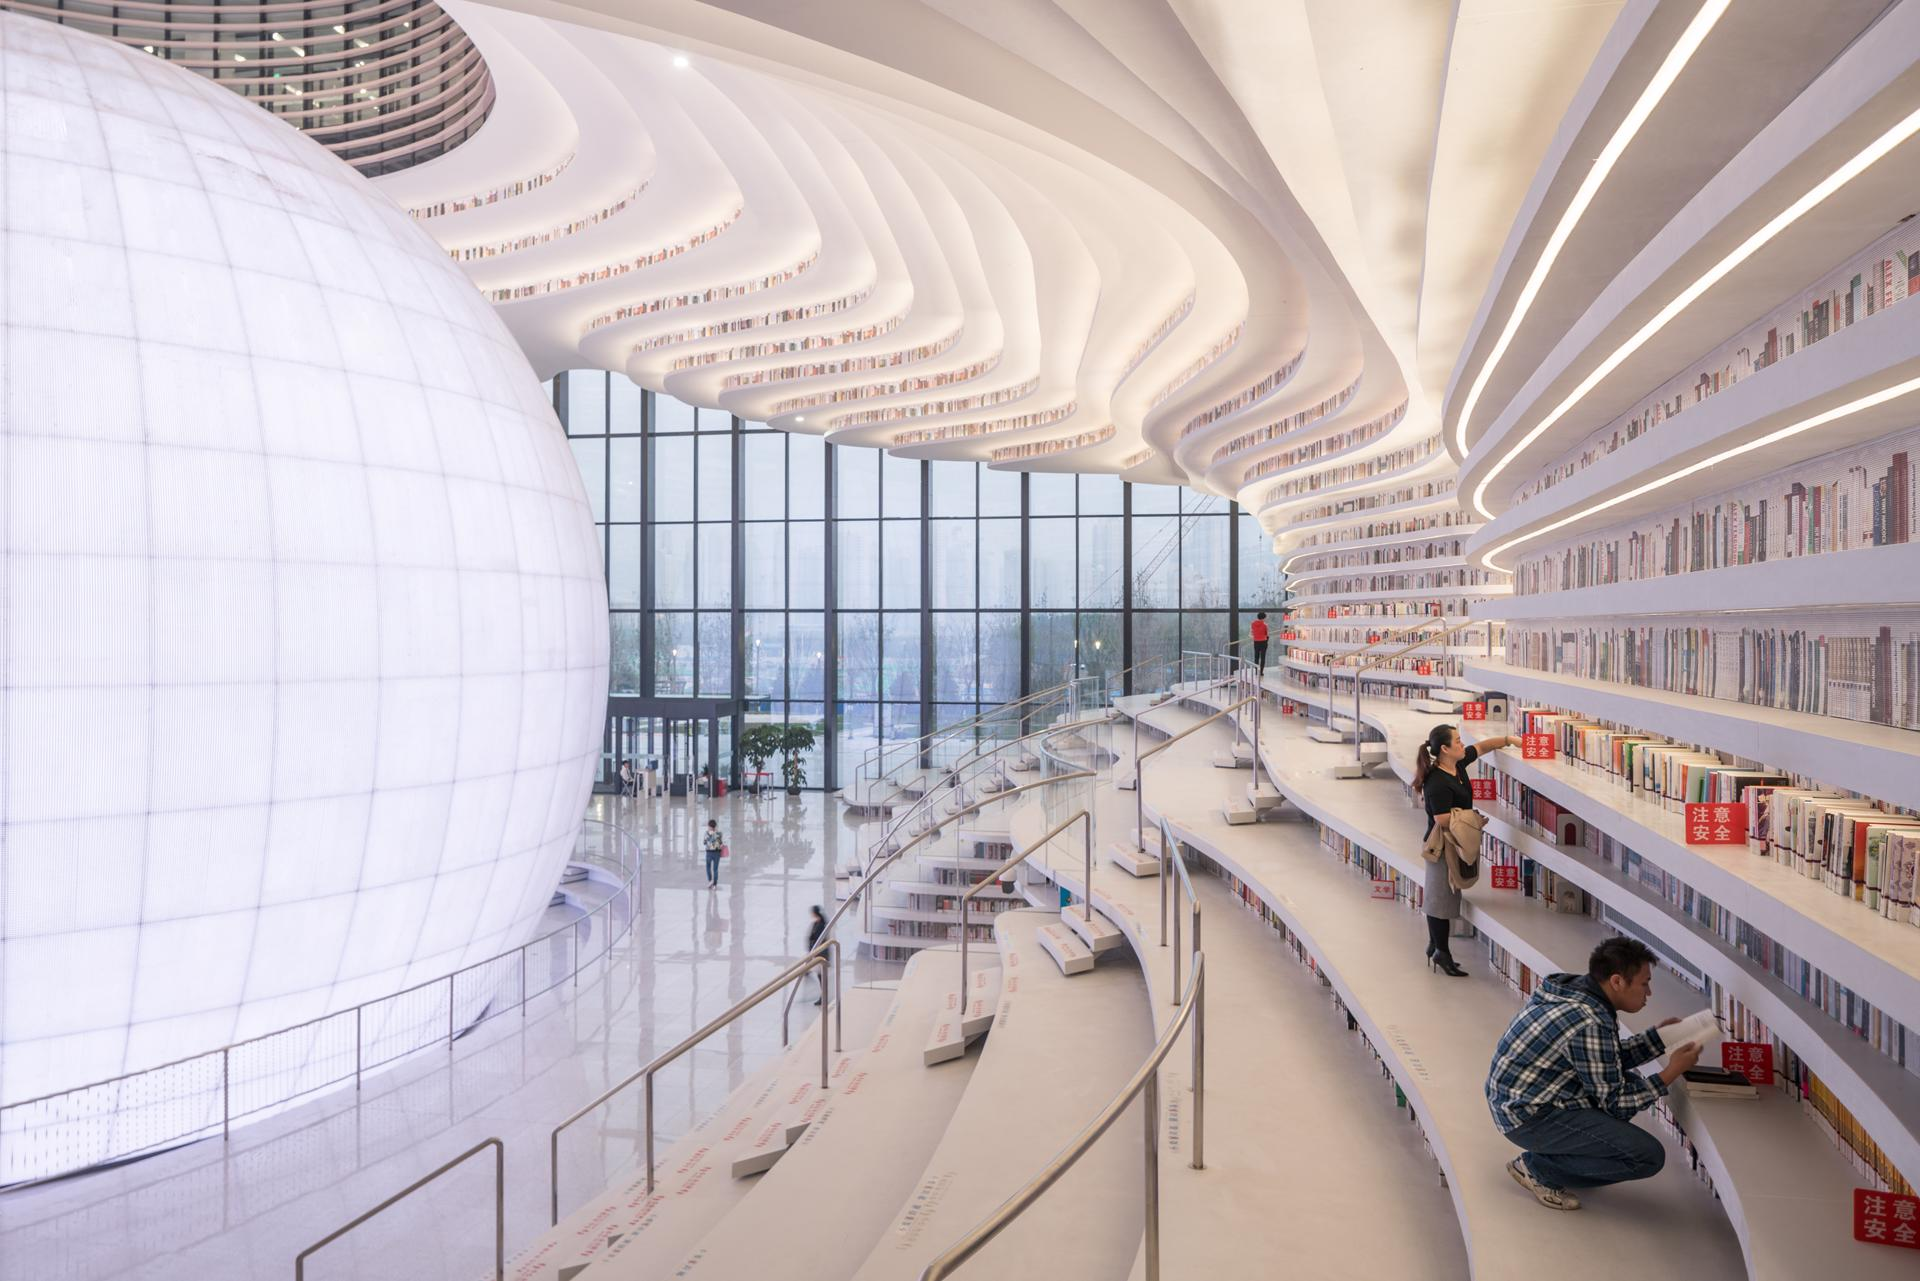 Contoured terraces provide access to the stacks at the Tianjin Binhai Library, photo by Ossip